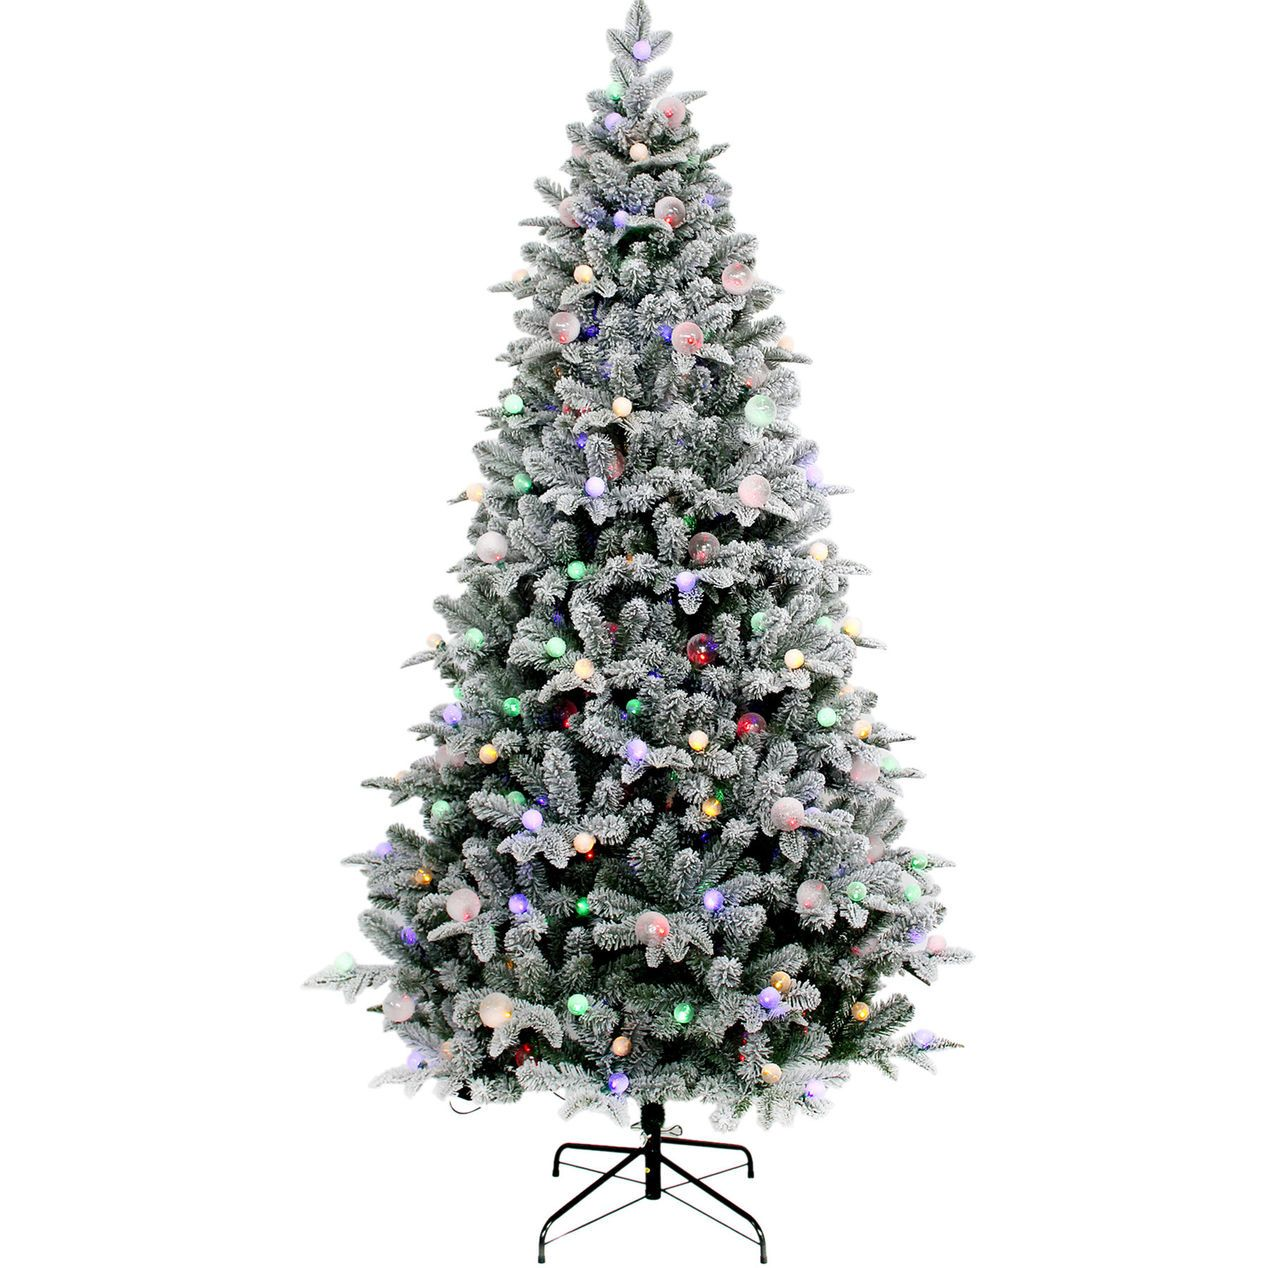 At Home Christmas Trees.T2 7 Pre Lit Zuzu Flocked Christmas Tree At Home